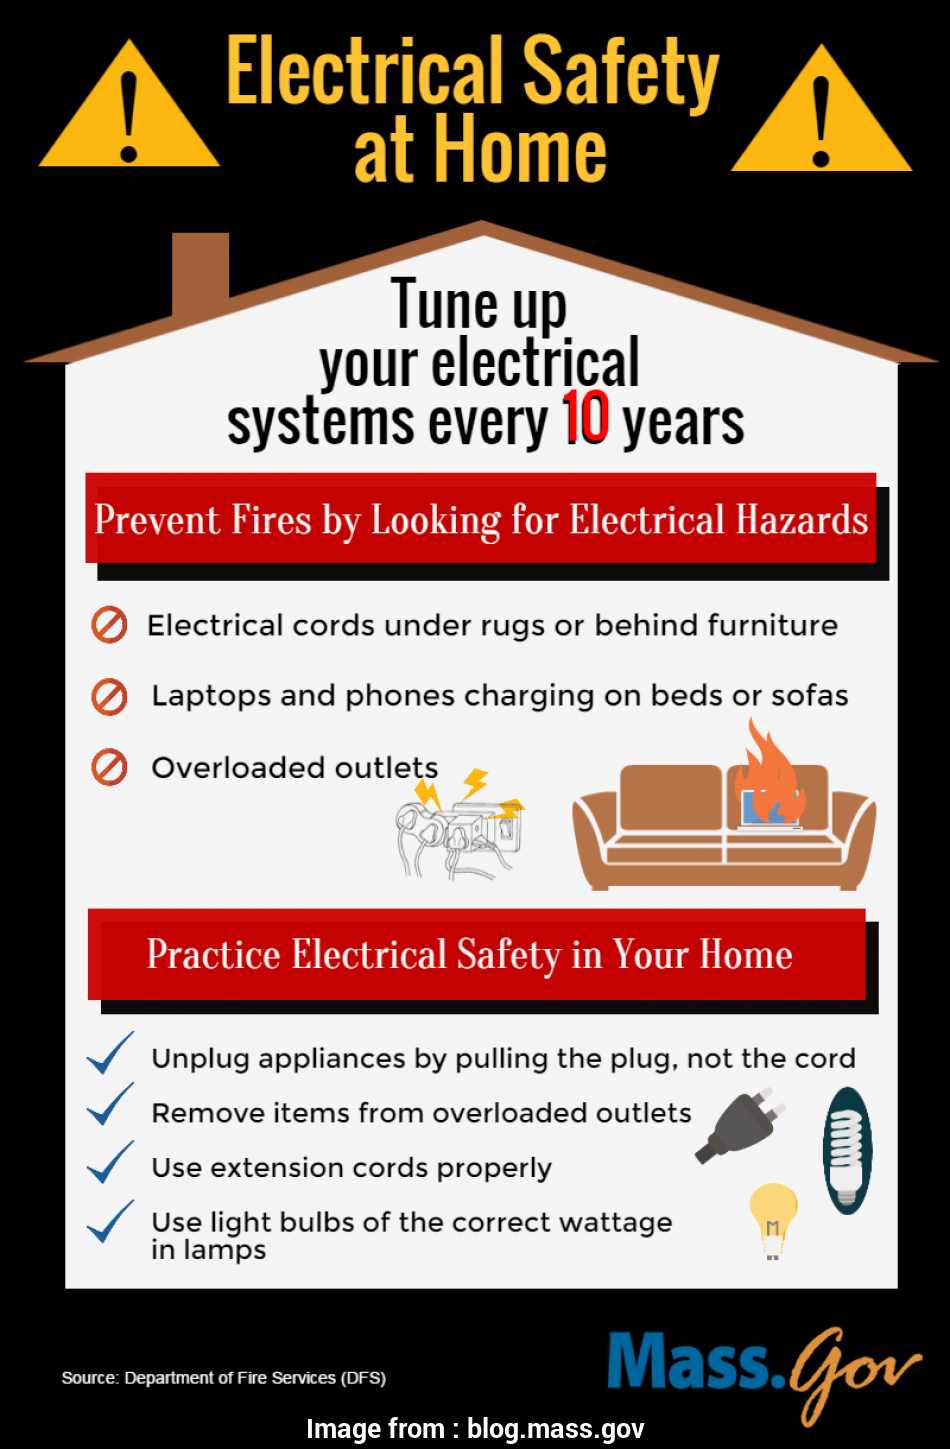 when is wire size in electrical hazard Learn, to Prevent Electrical Fires in Your Home, Mass.Gov Blog 16 Cleaver When Is Wire Size In Electrical Hazard Ideas